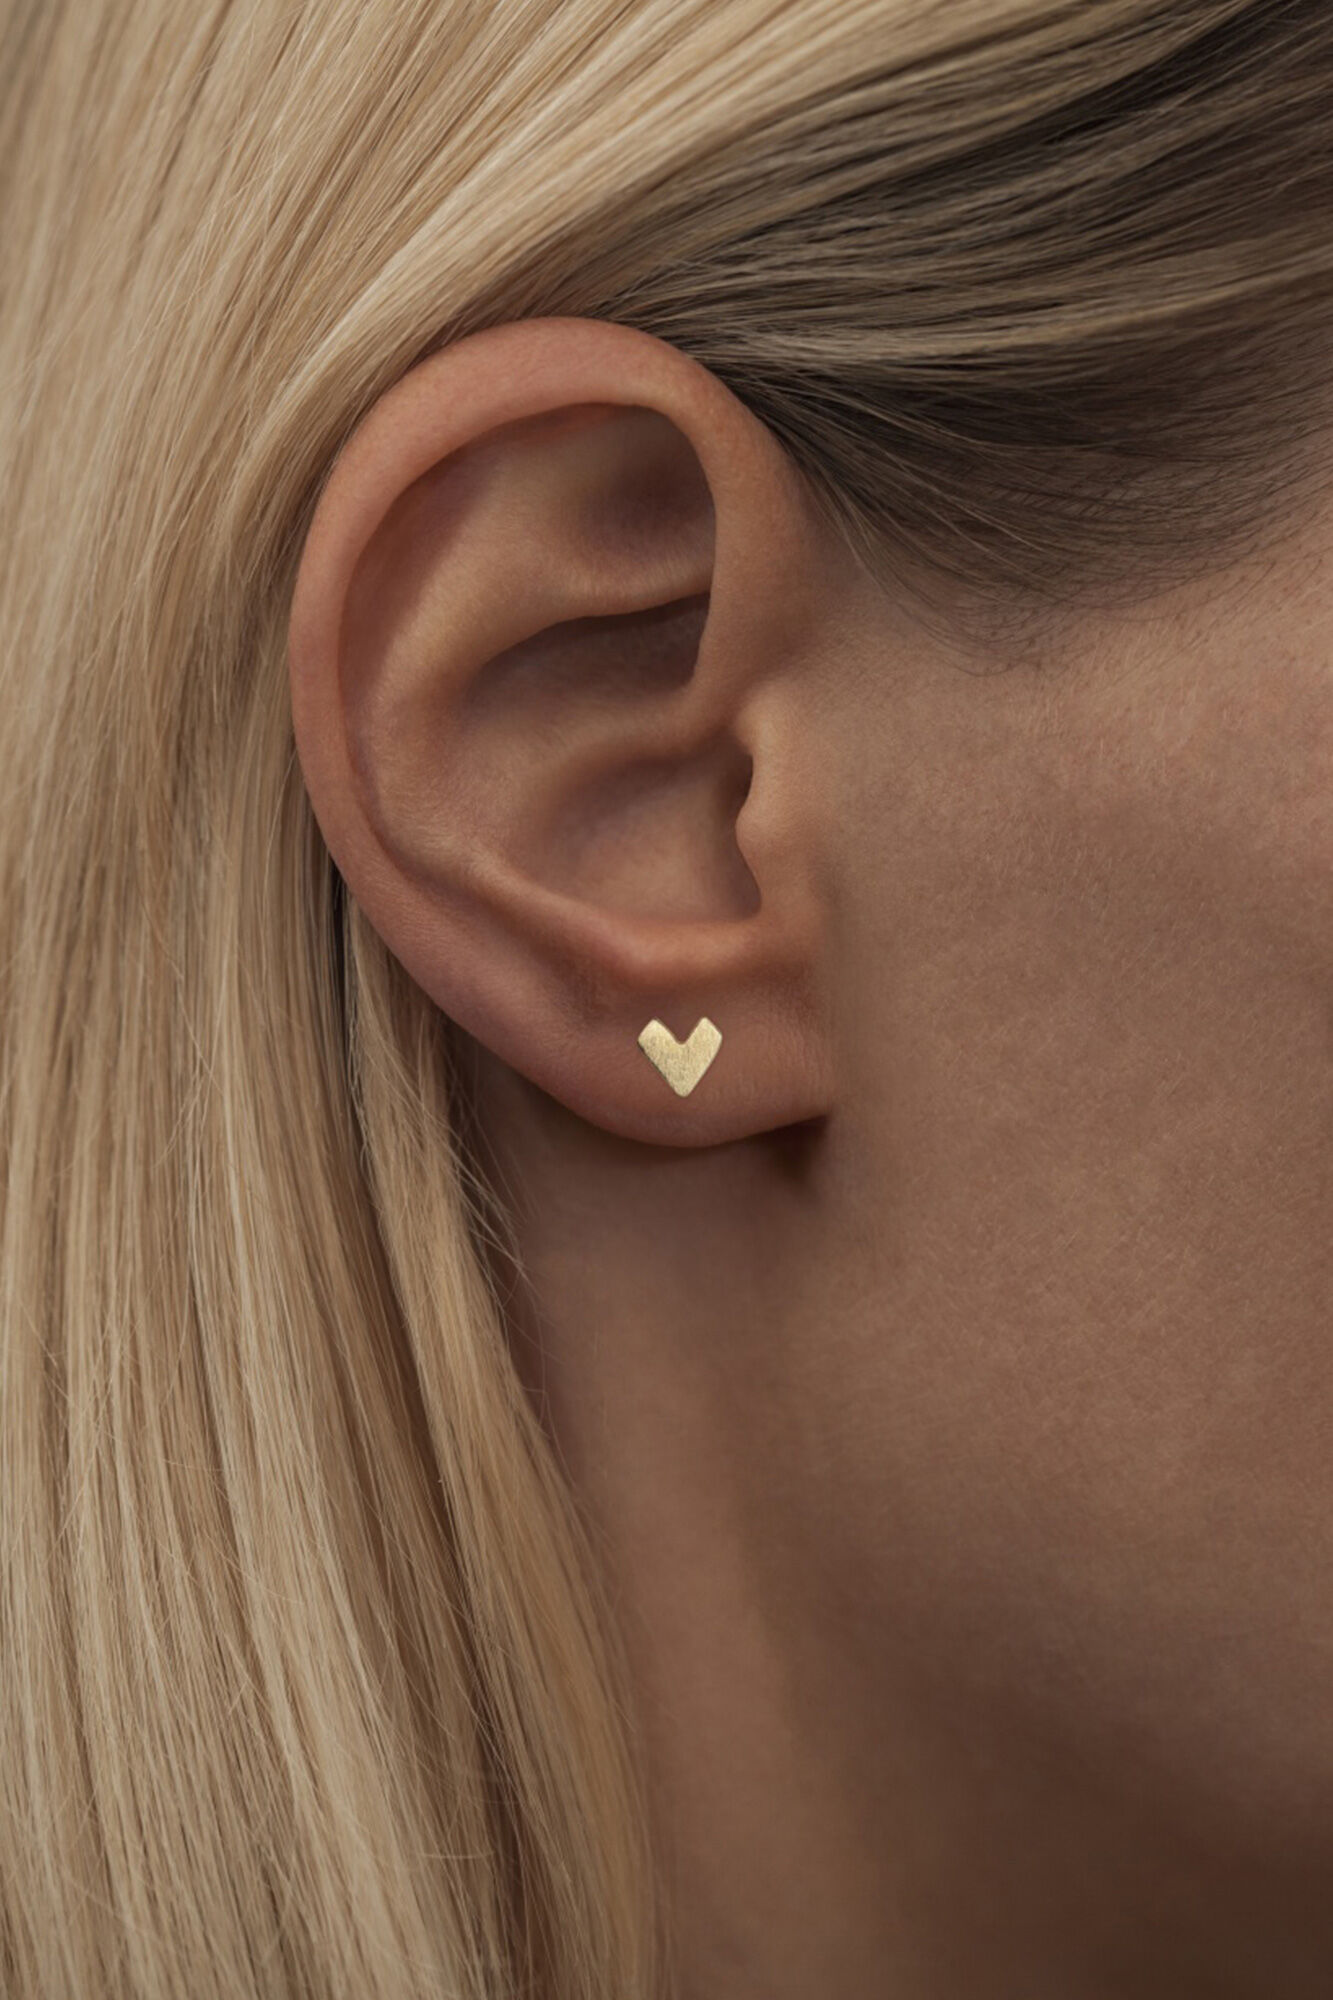 Pixel Love Ear Studs LULUE166, GOLD MATTE